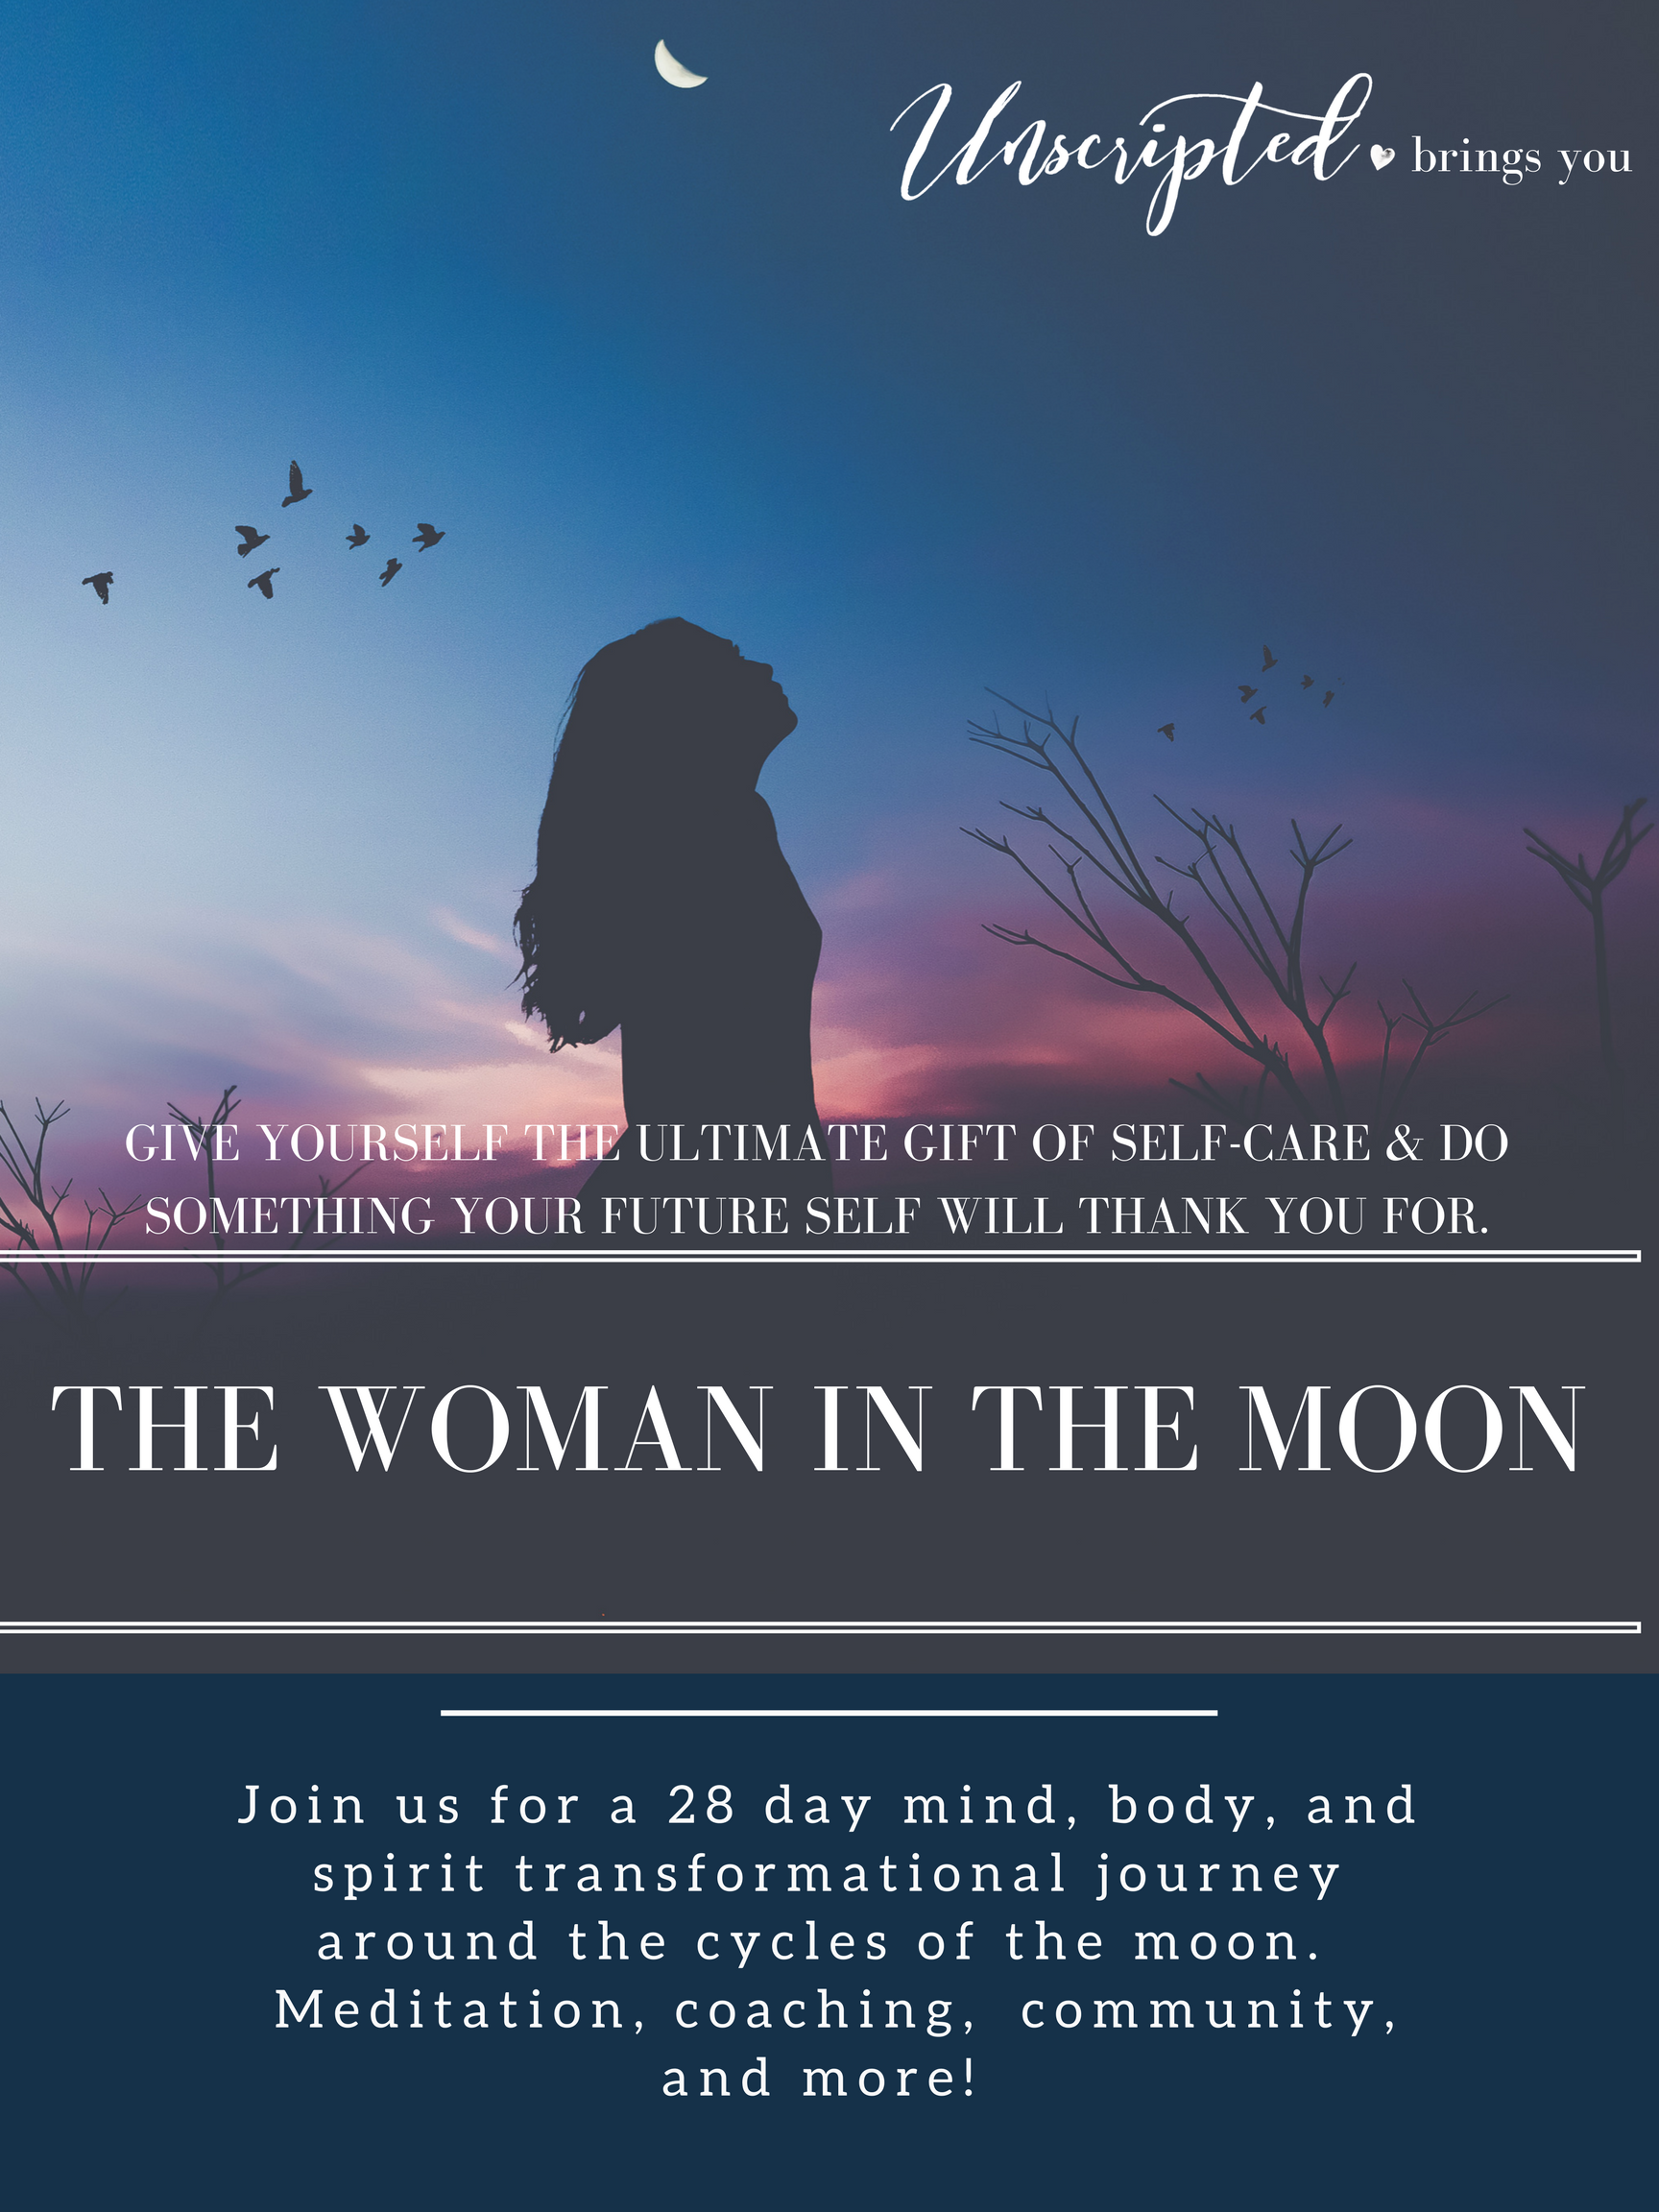 Copy of The Woman in the Moon.png